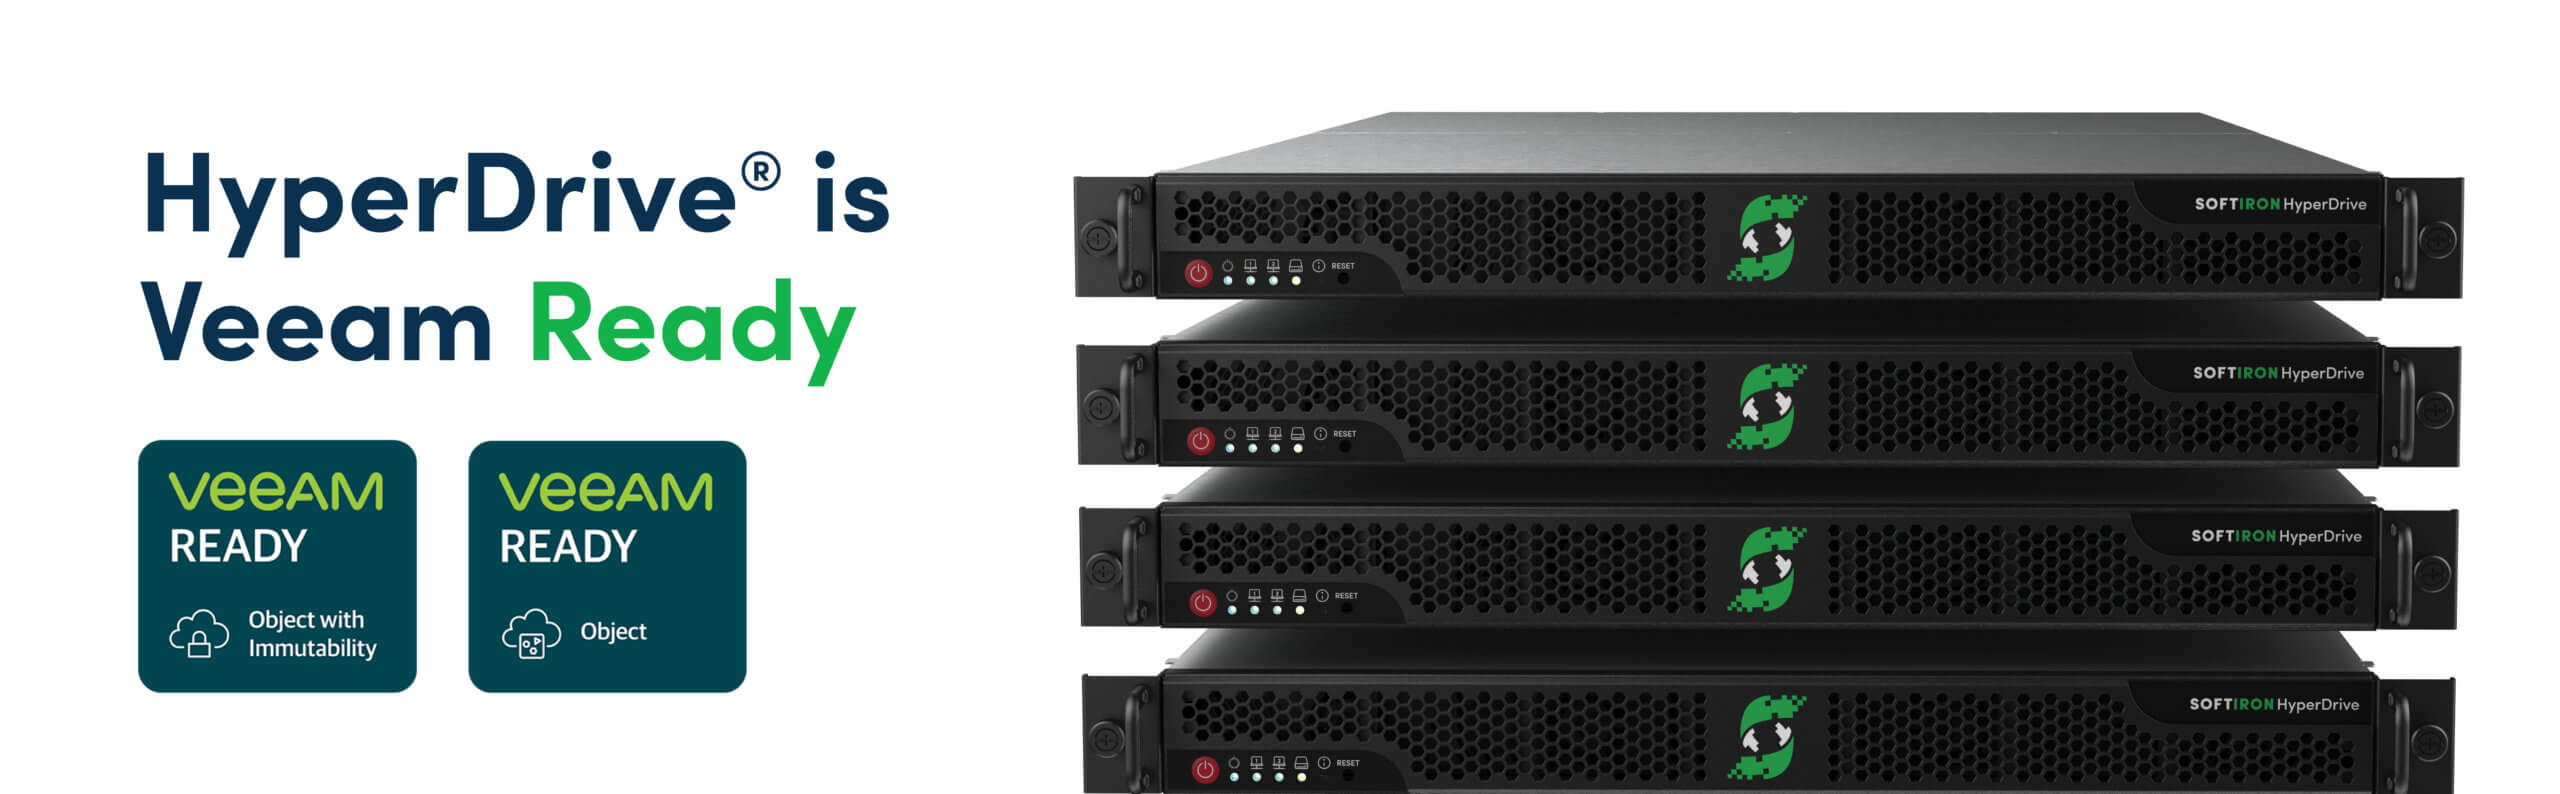 Image for SoftIron's Open Source-Based HyperDrive Storage Solution Verified Veeam Ready